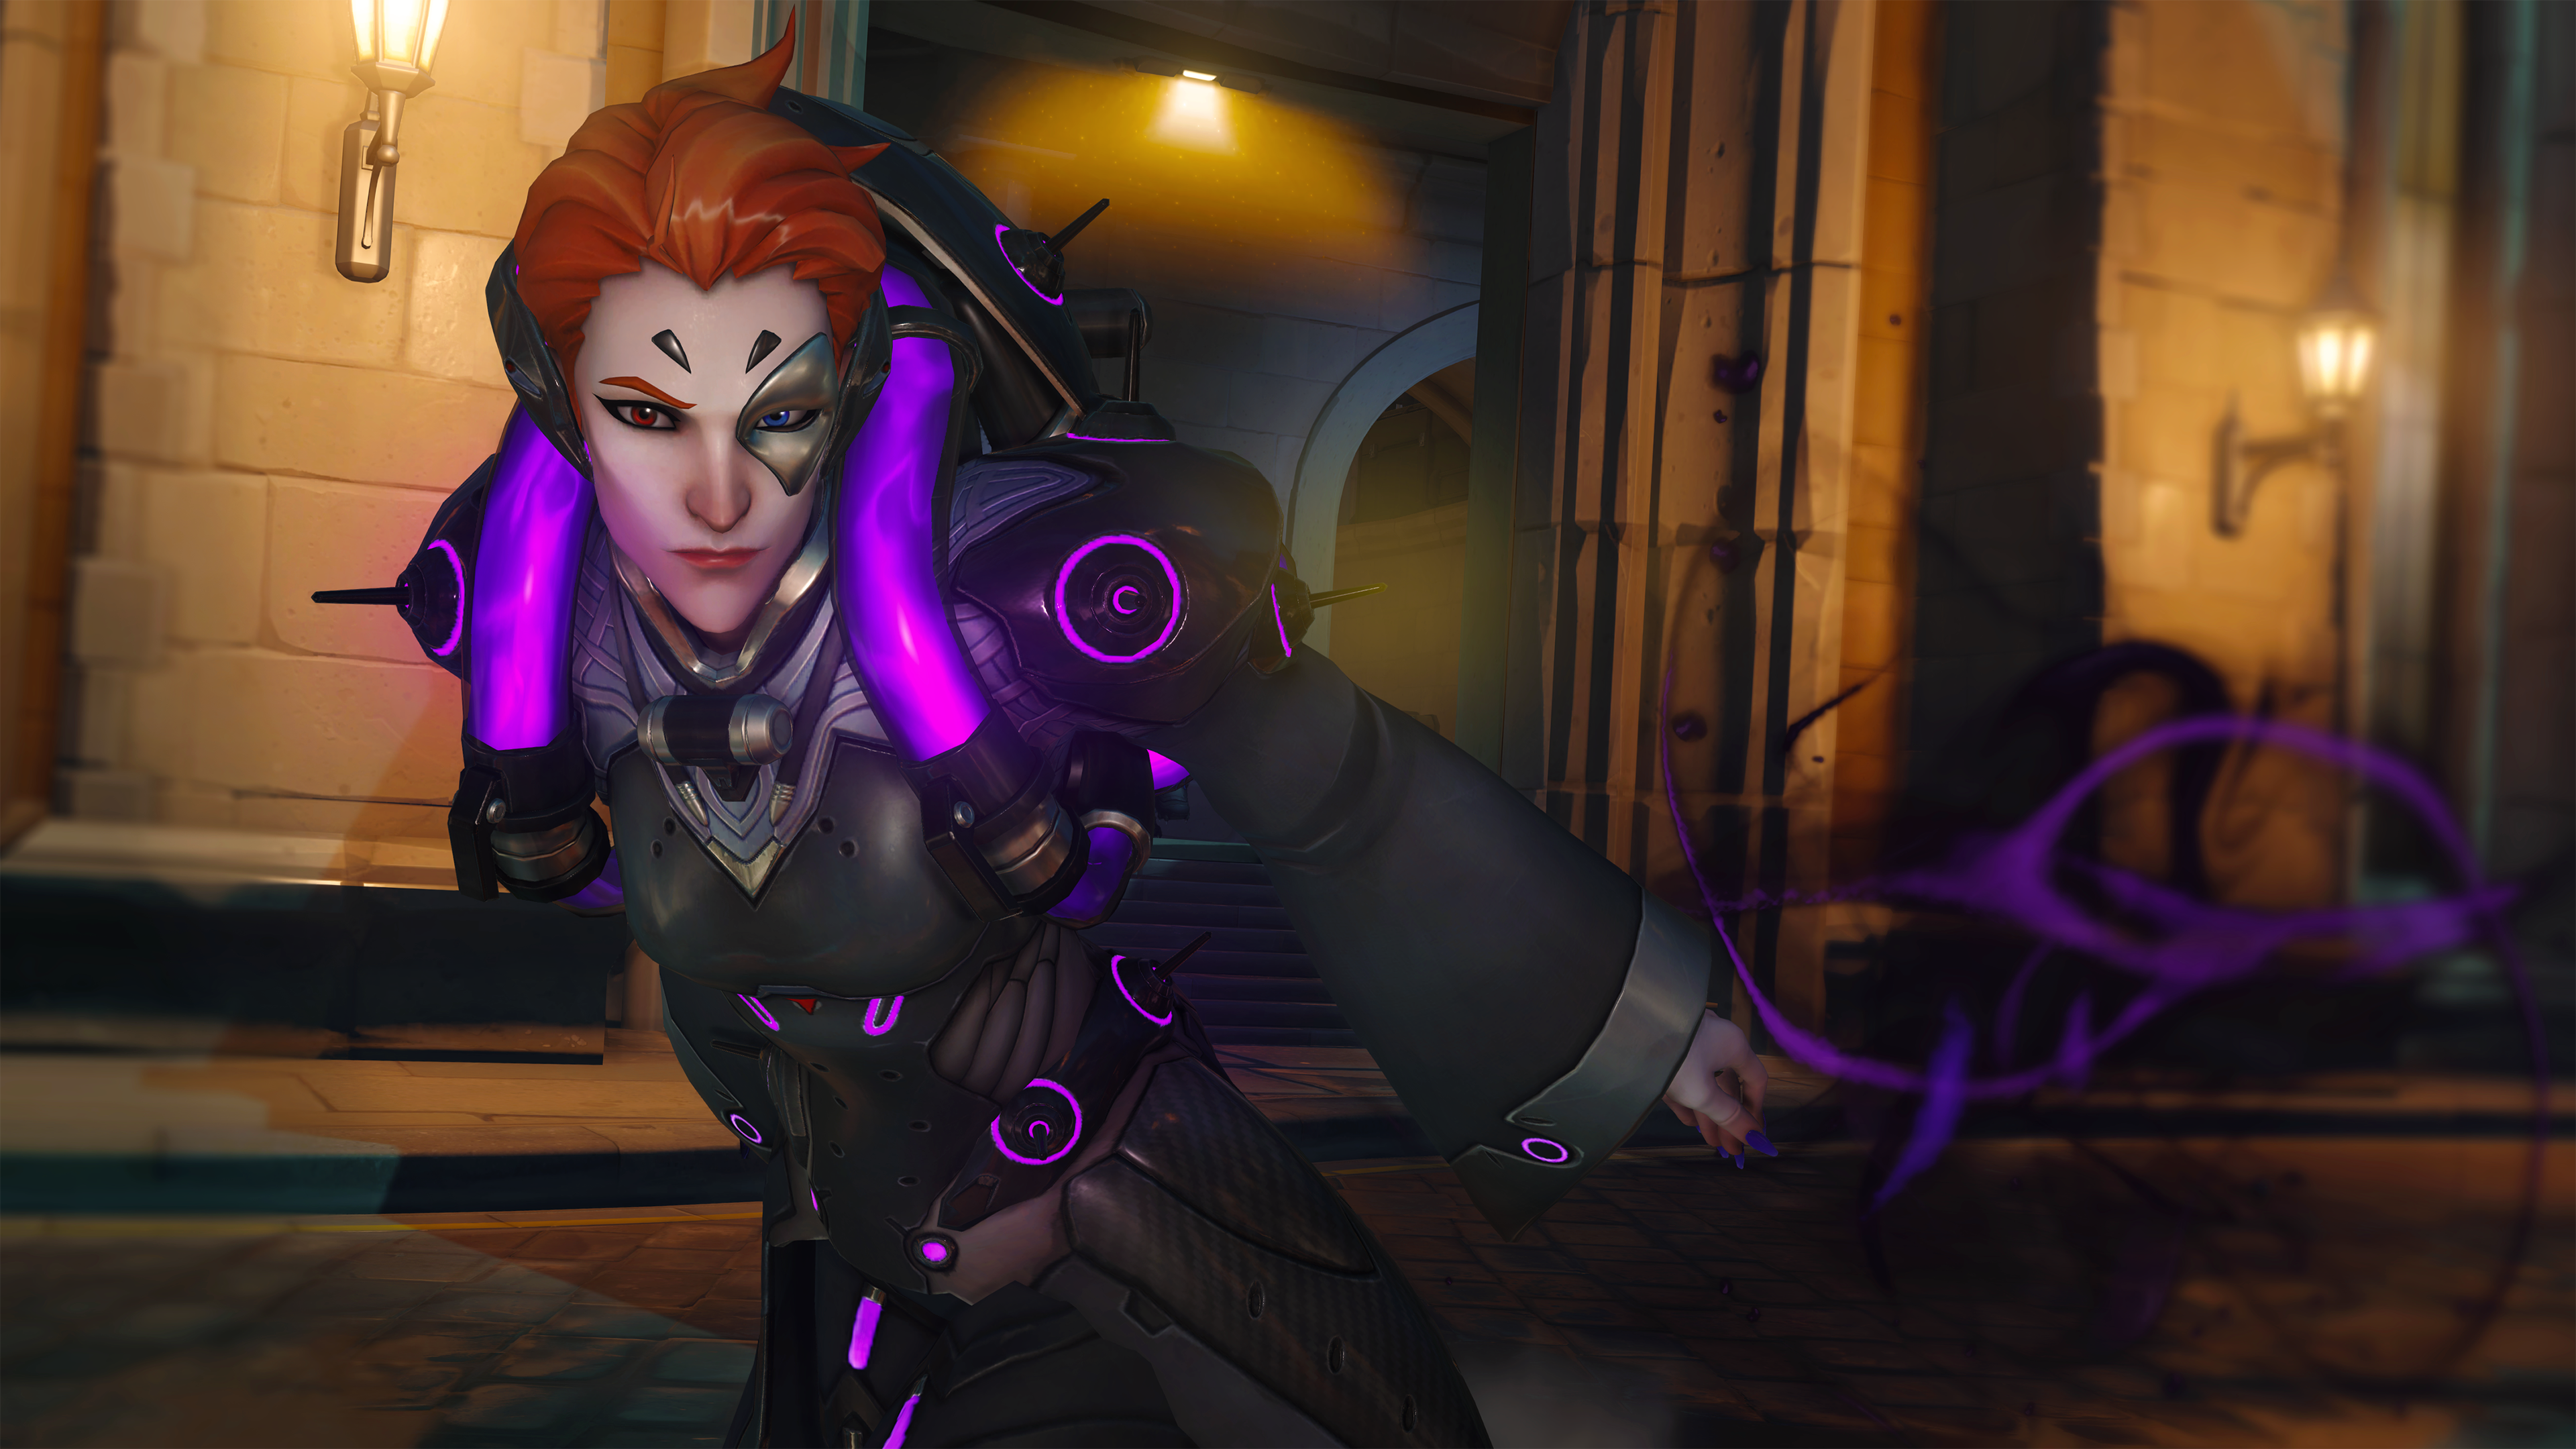 Overwatch - Moira exits her Fade ability